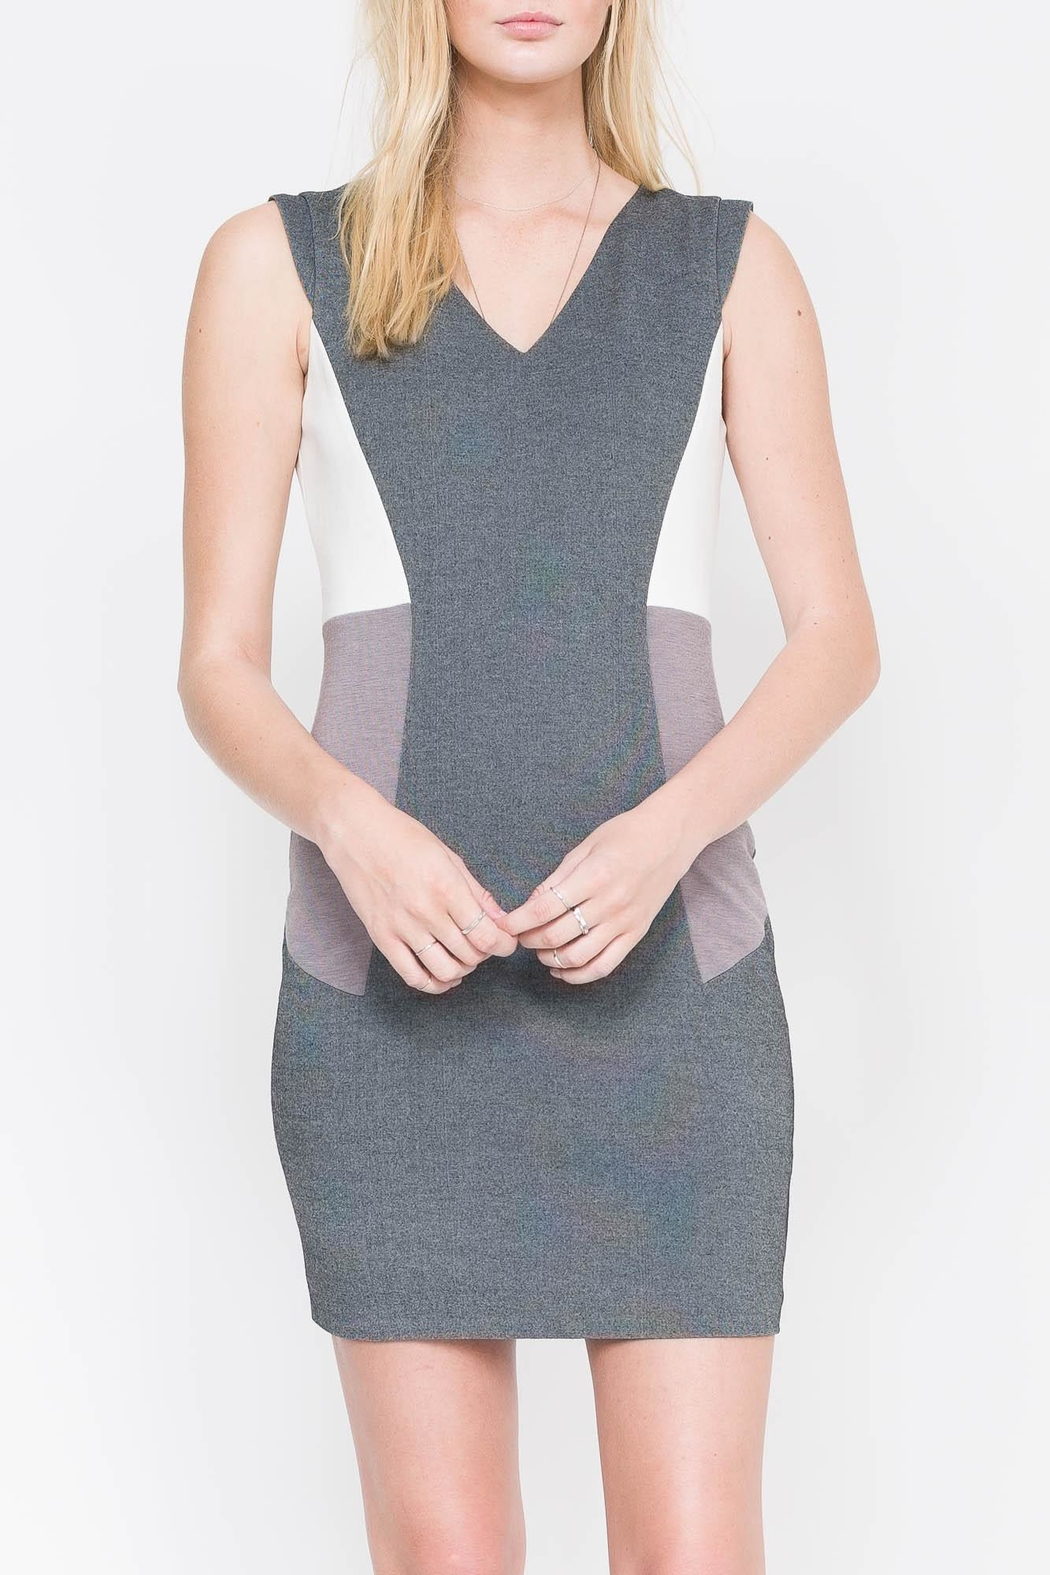 QUINN Nerissa Color-Blocked Dress - Front Cropped Image